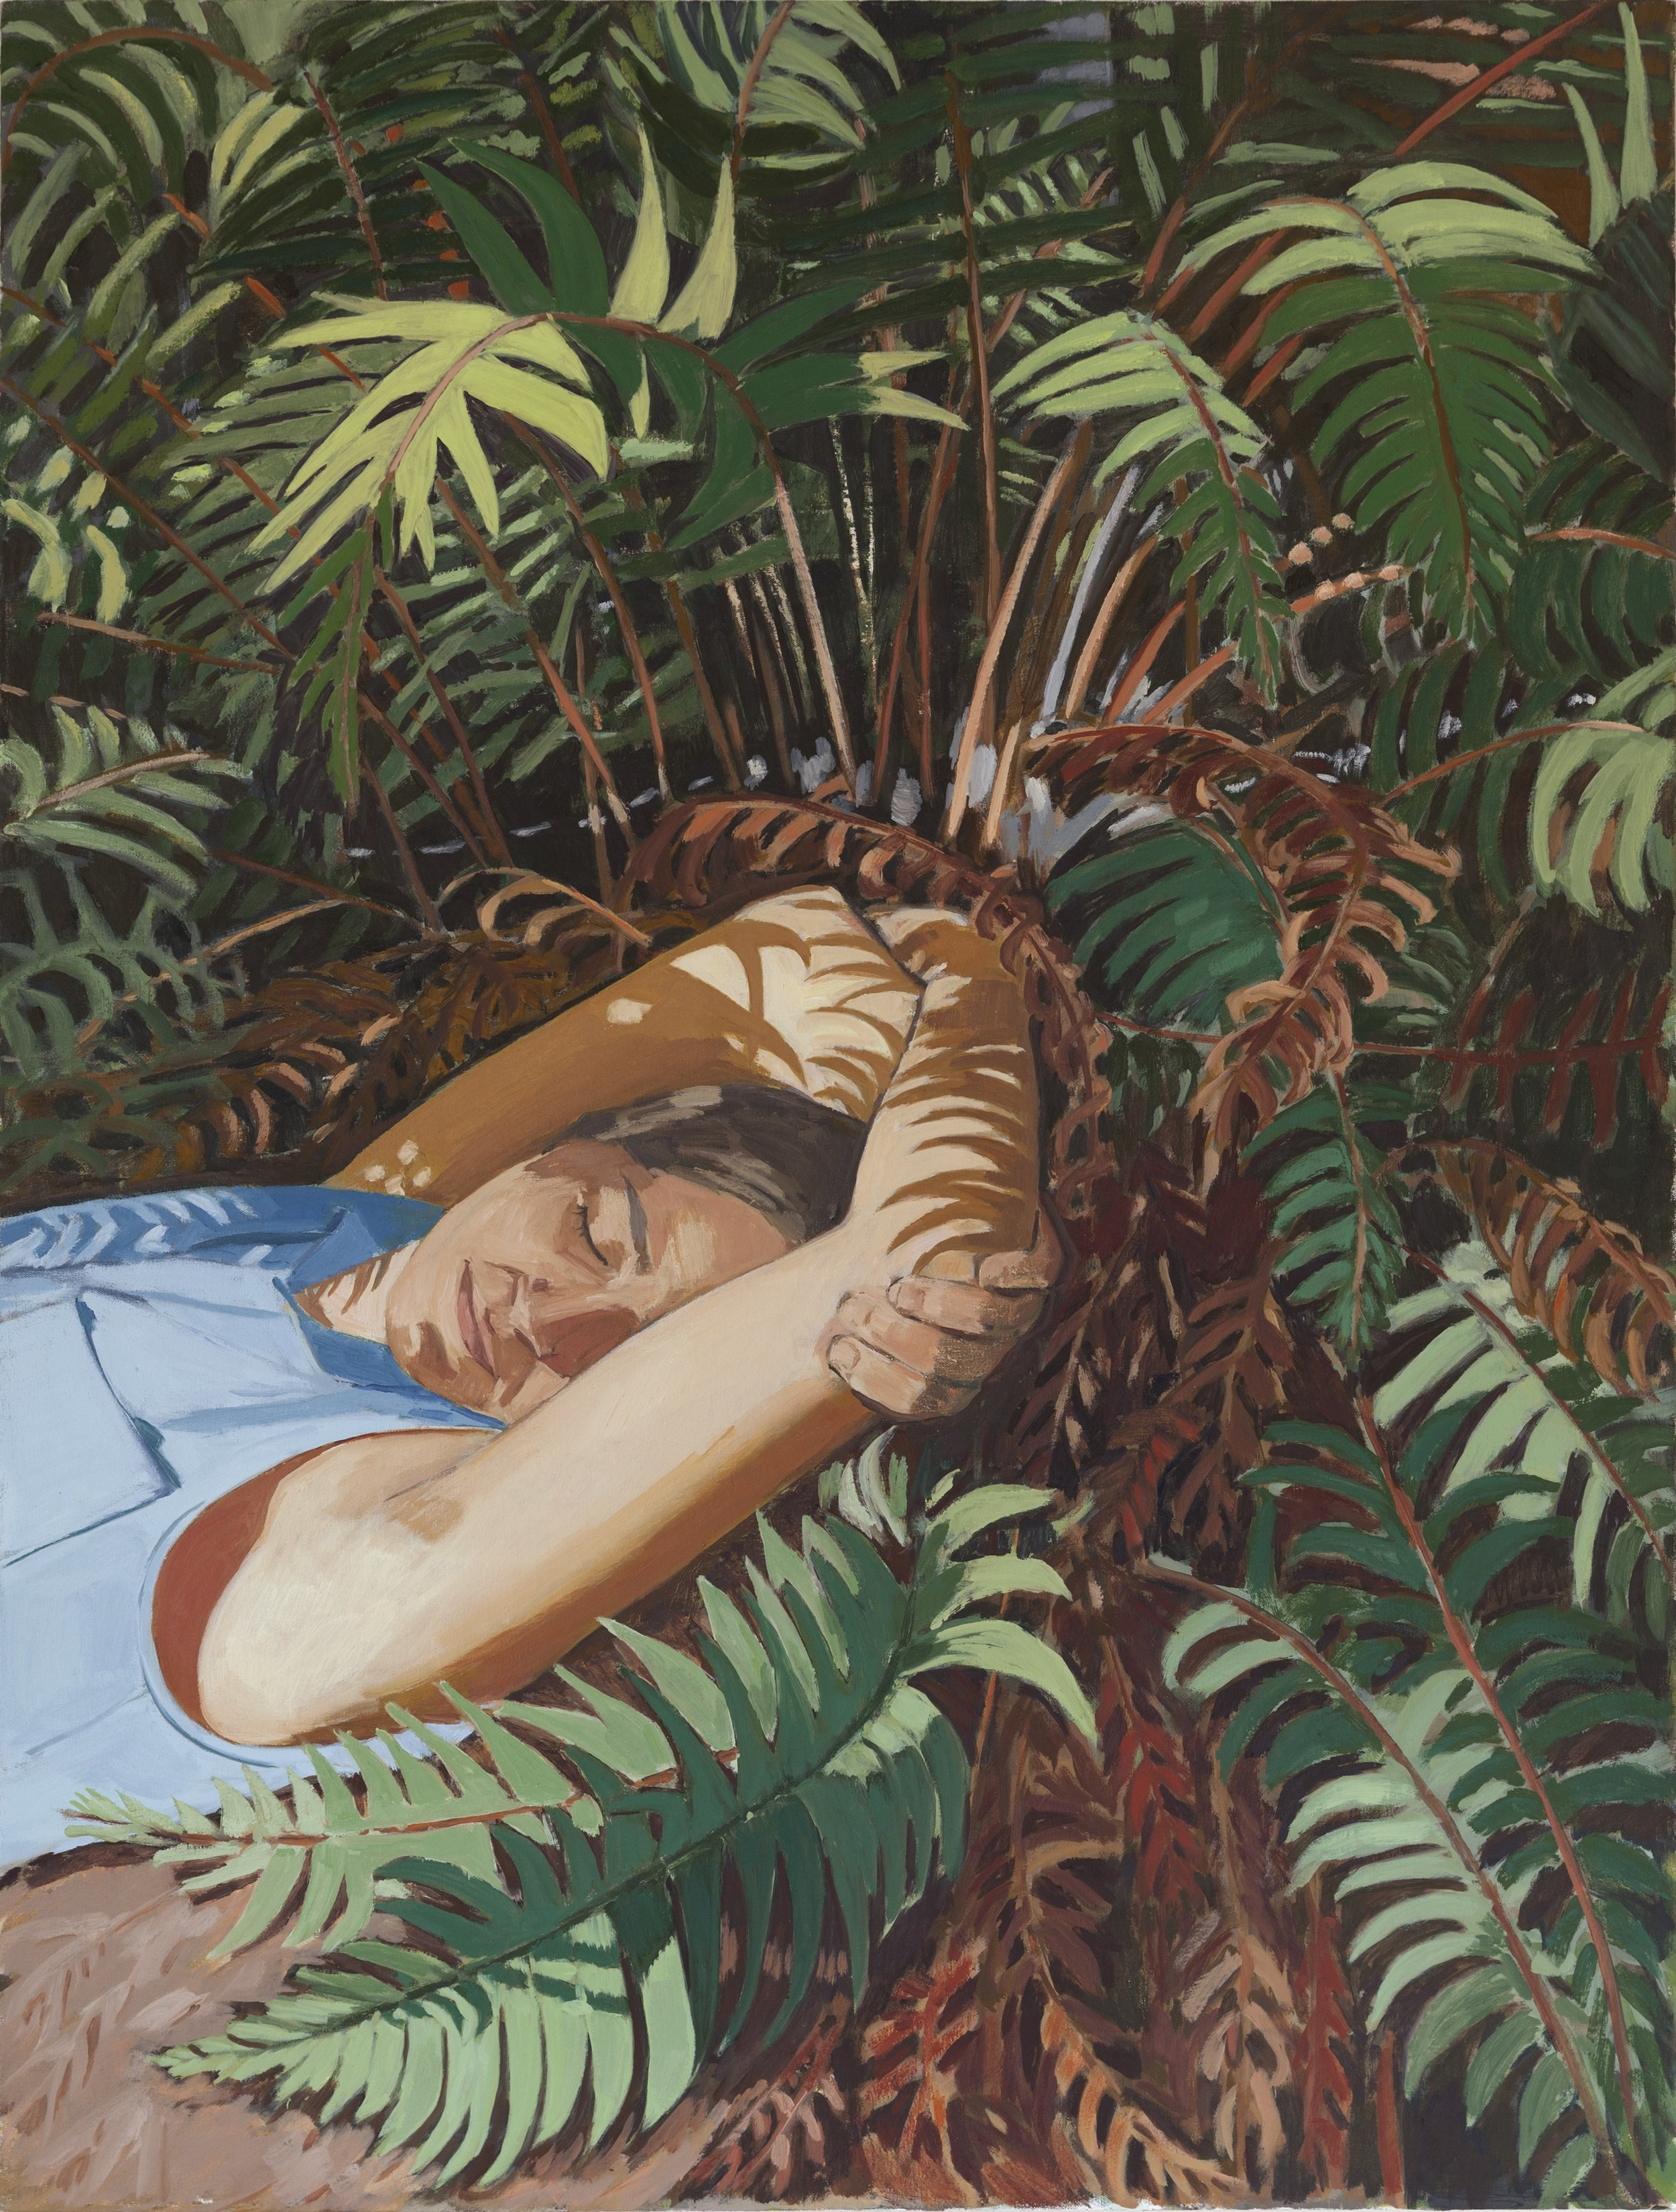 """Birthday with the Ferns, 2018, oil on canvas, 48"""" x 36"""", $4,200 (payment plan available)"""